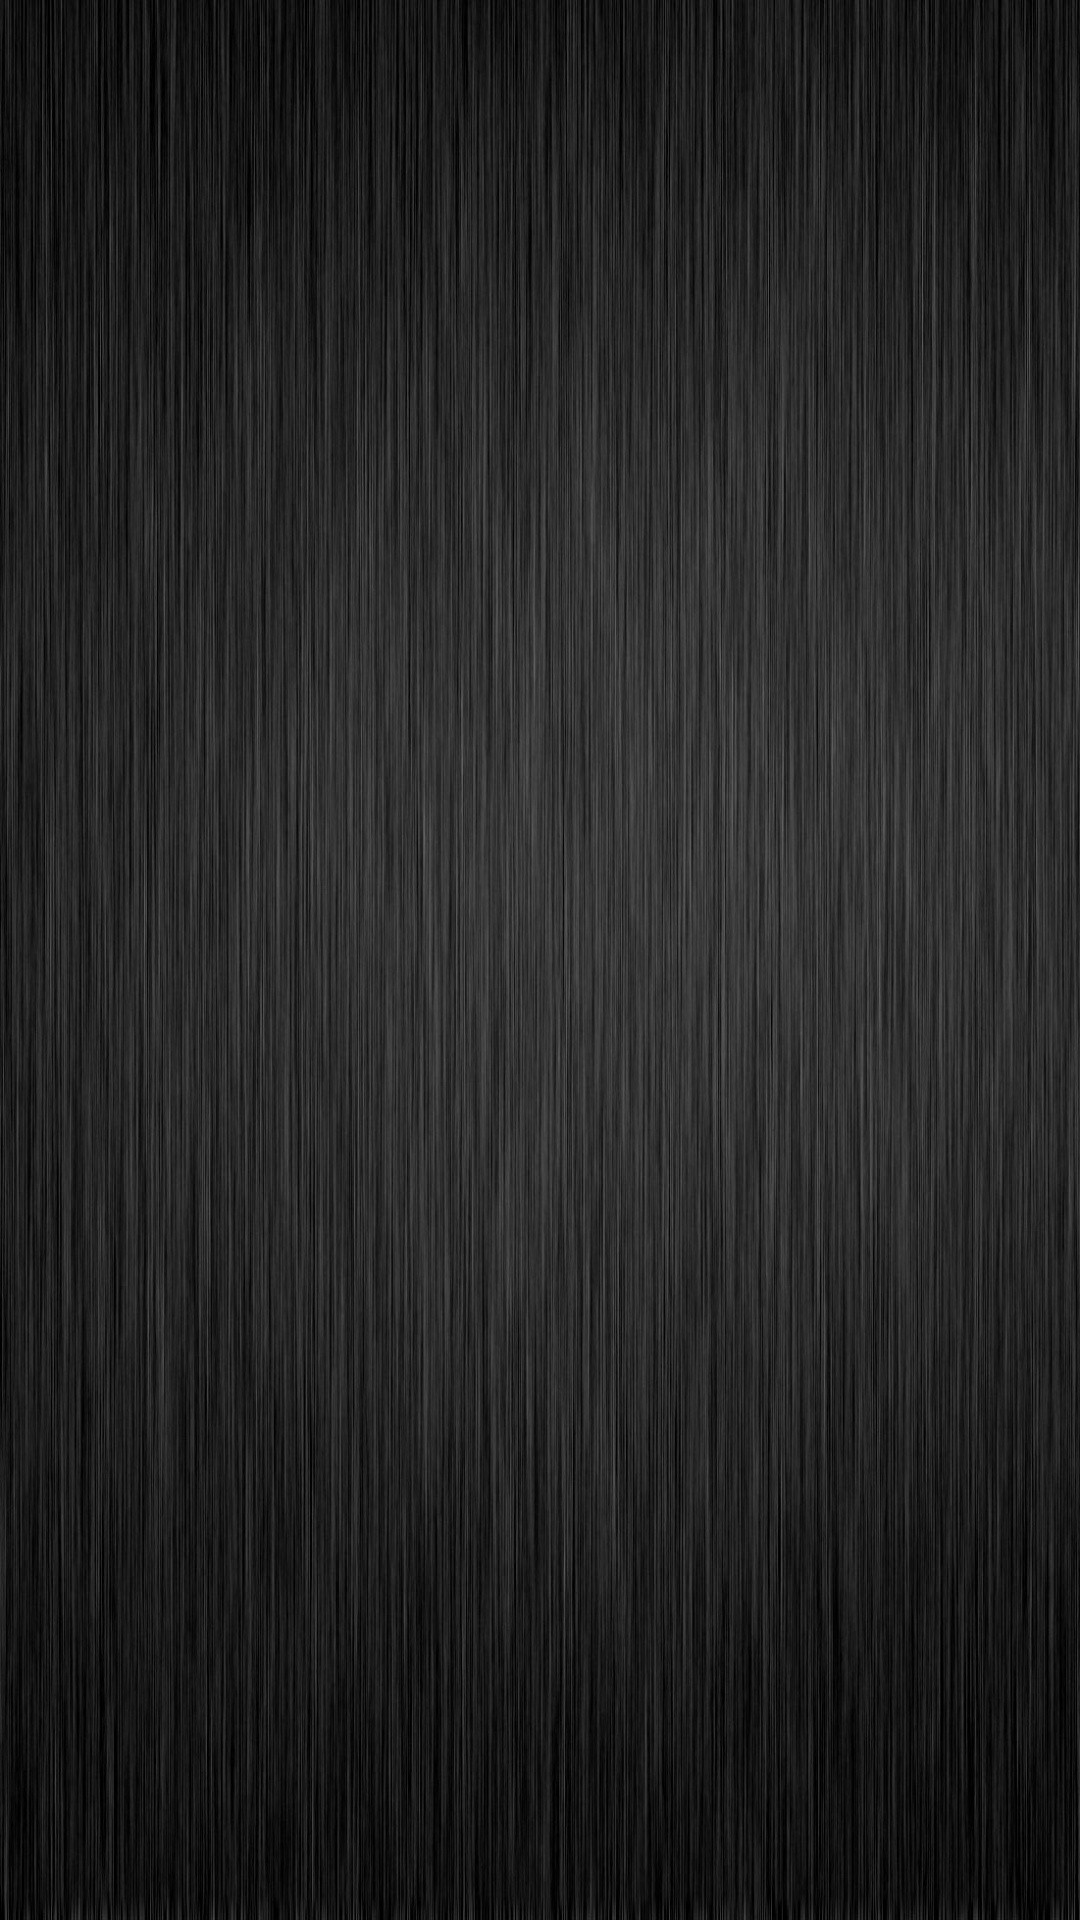 Dark iPhone 7 wallpaper